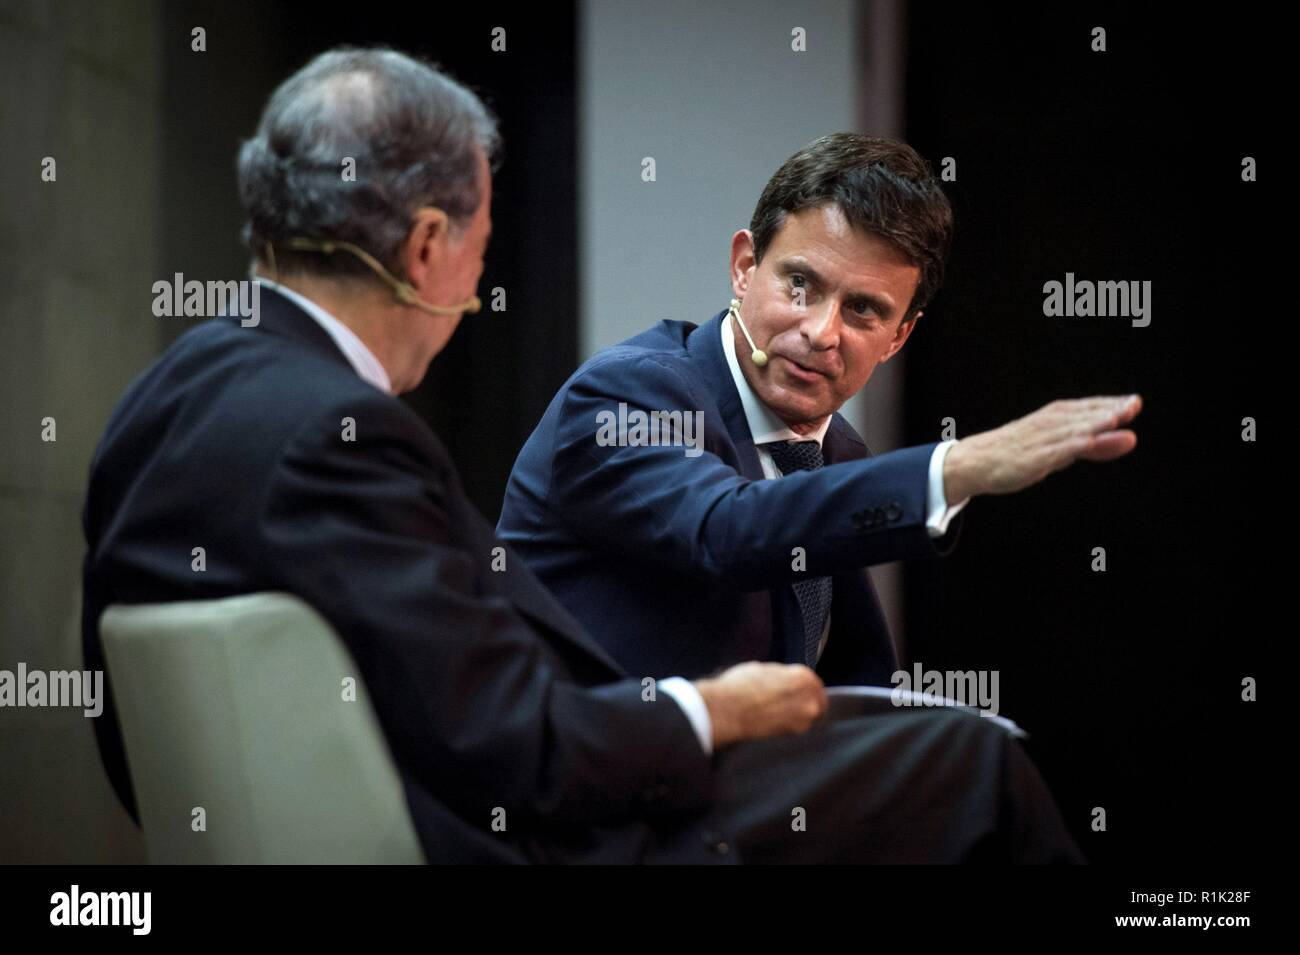 Madrid, Spain. 13th Nov, 2018. Barcelona 2019 city hall candidate and former Prime Minister of France Manuel Valls (R) and businessman and academician Gregorio Maranon y Bertran de Lis (L) take part in the talks 'The citizen environment in the 21st century. A cosmopolitan, prosperous and safe Barcelona', organized by the Rafael del Pino Foundation, in Madrid, Spain, 13 November 2018. Credit: Luca Piergiovanni/EFE/Alamy Live News - Stock Image